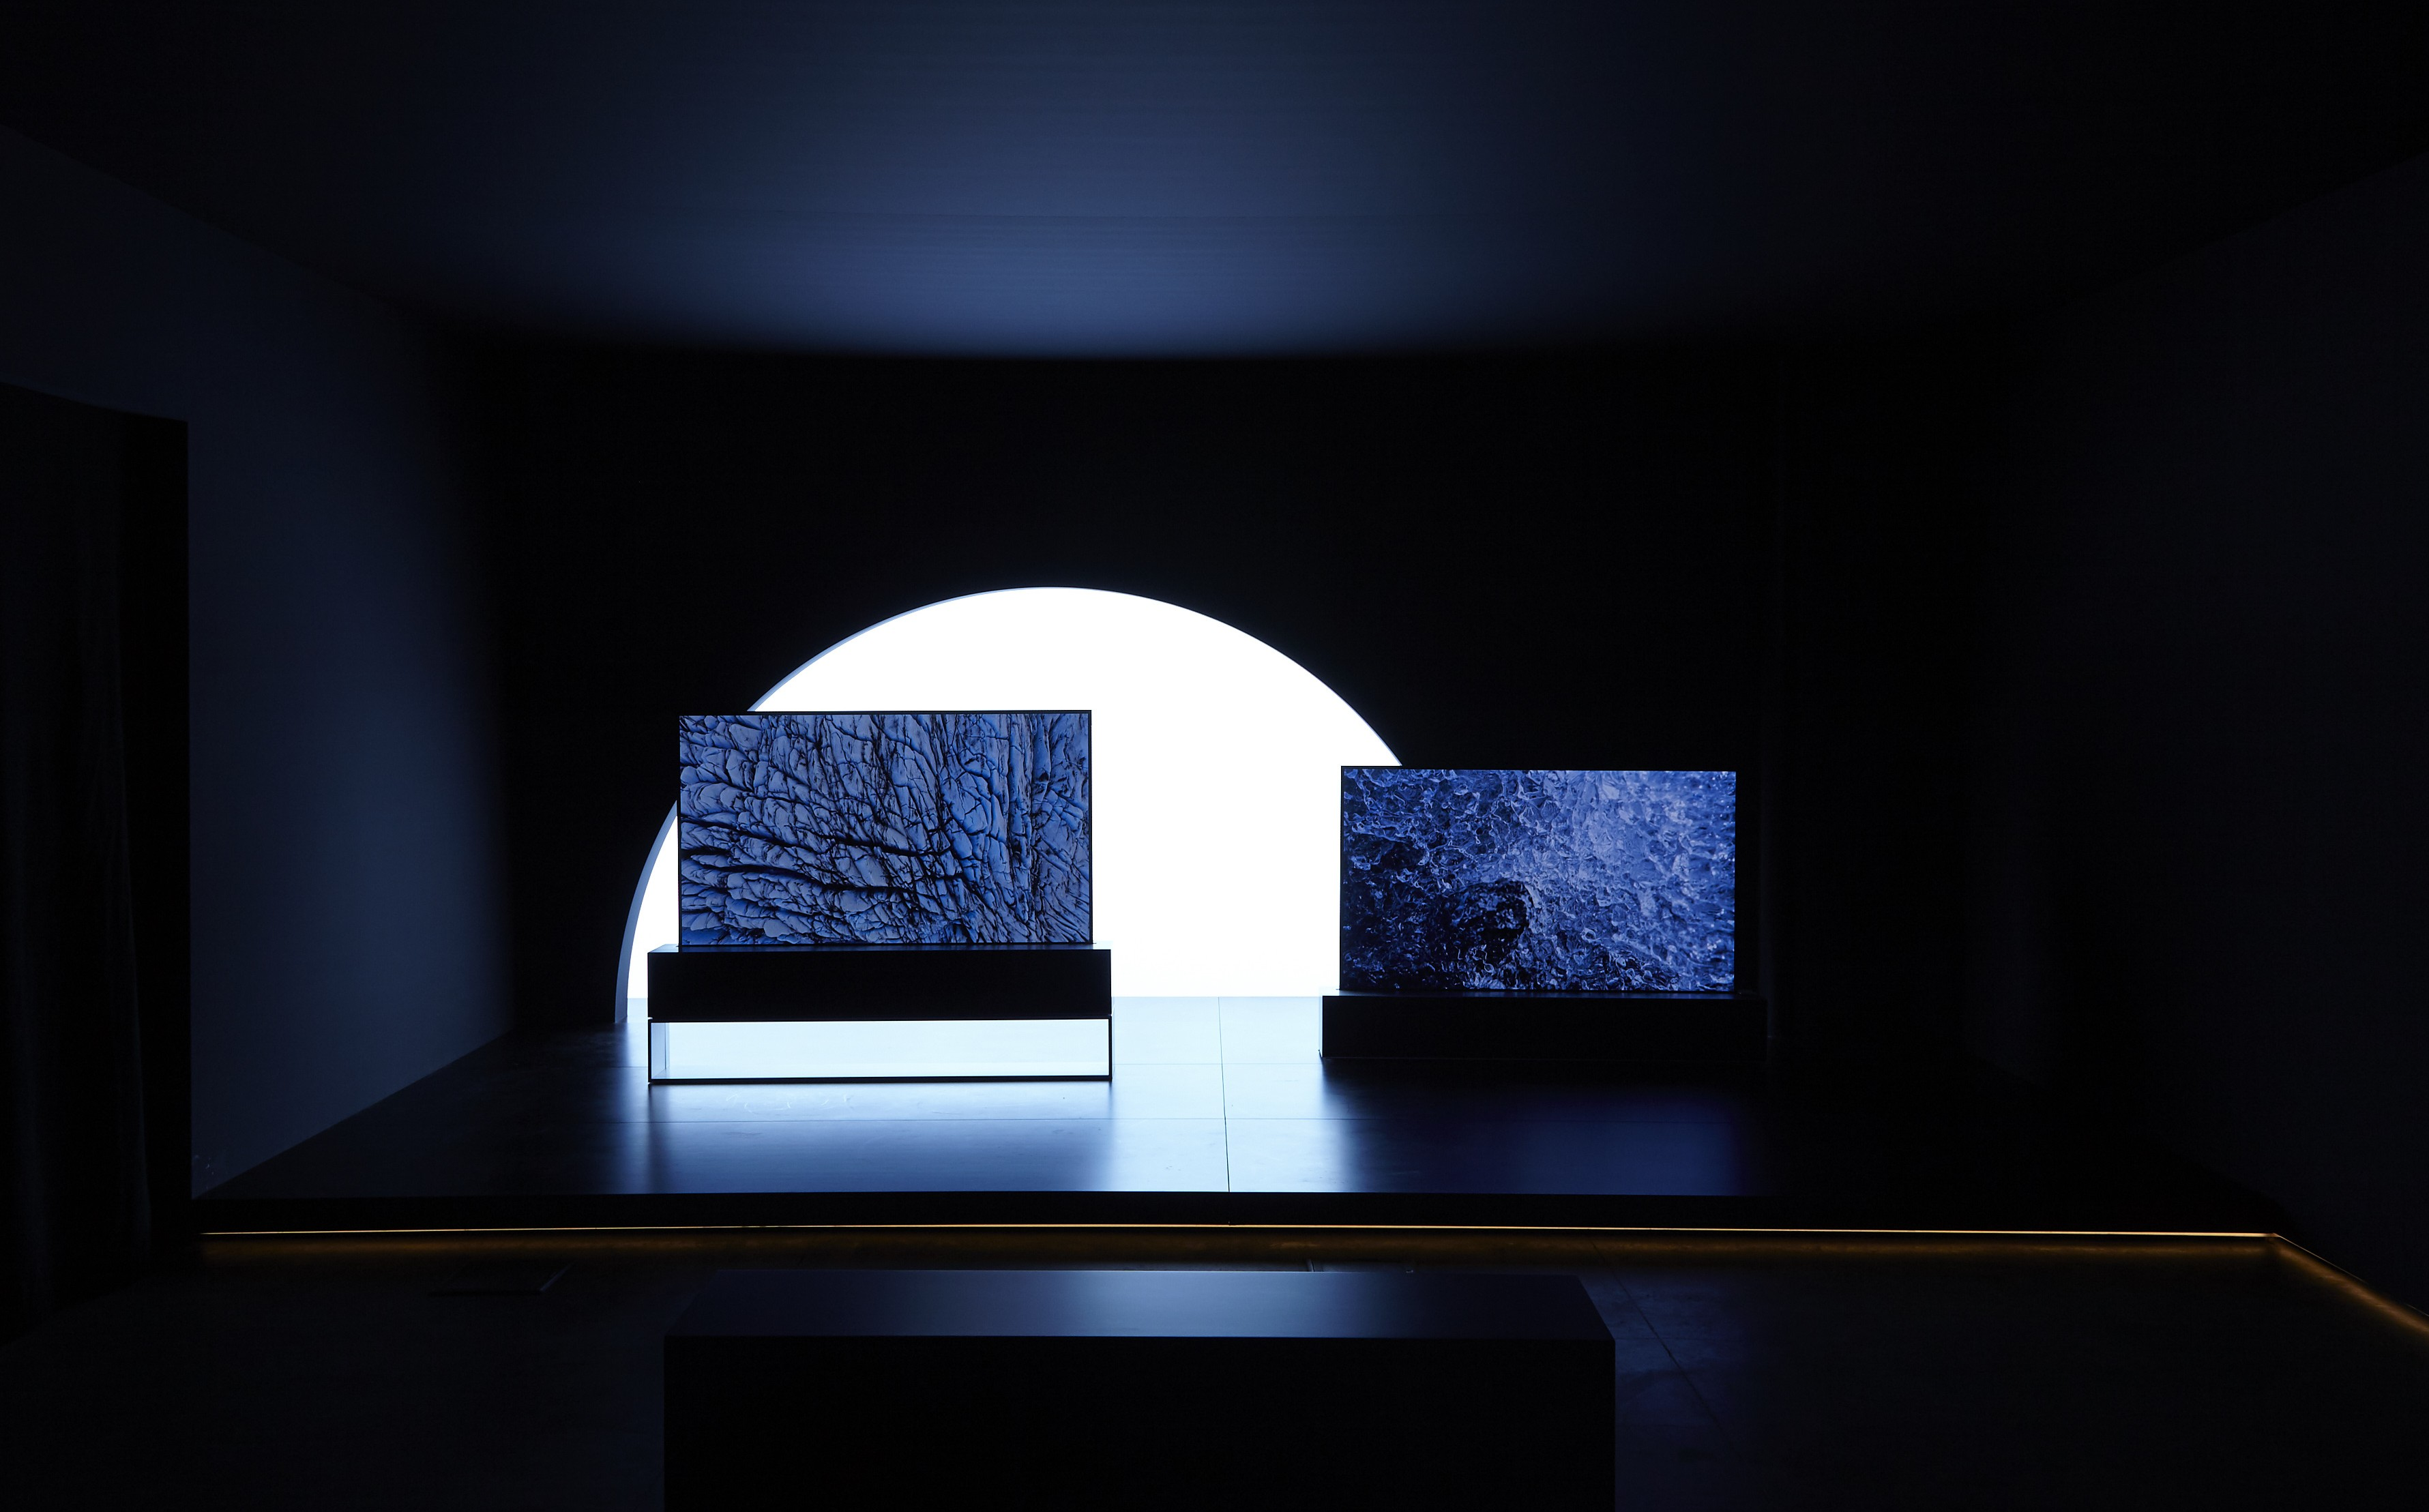 LG SIGNATURE OLED TV R model 65R9 showing natural color expression for the Redefining Space installation at Milan Design Week.